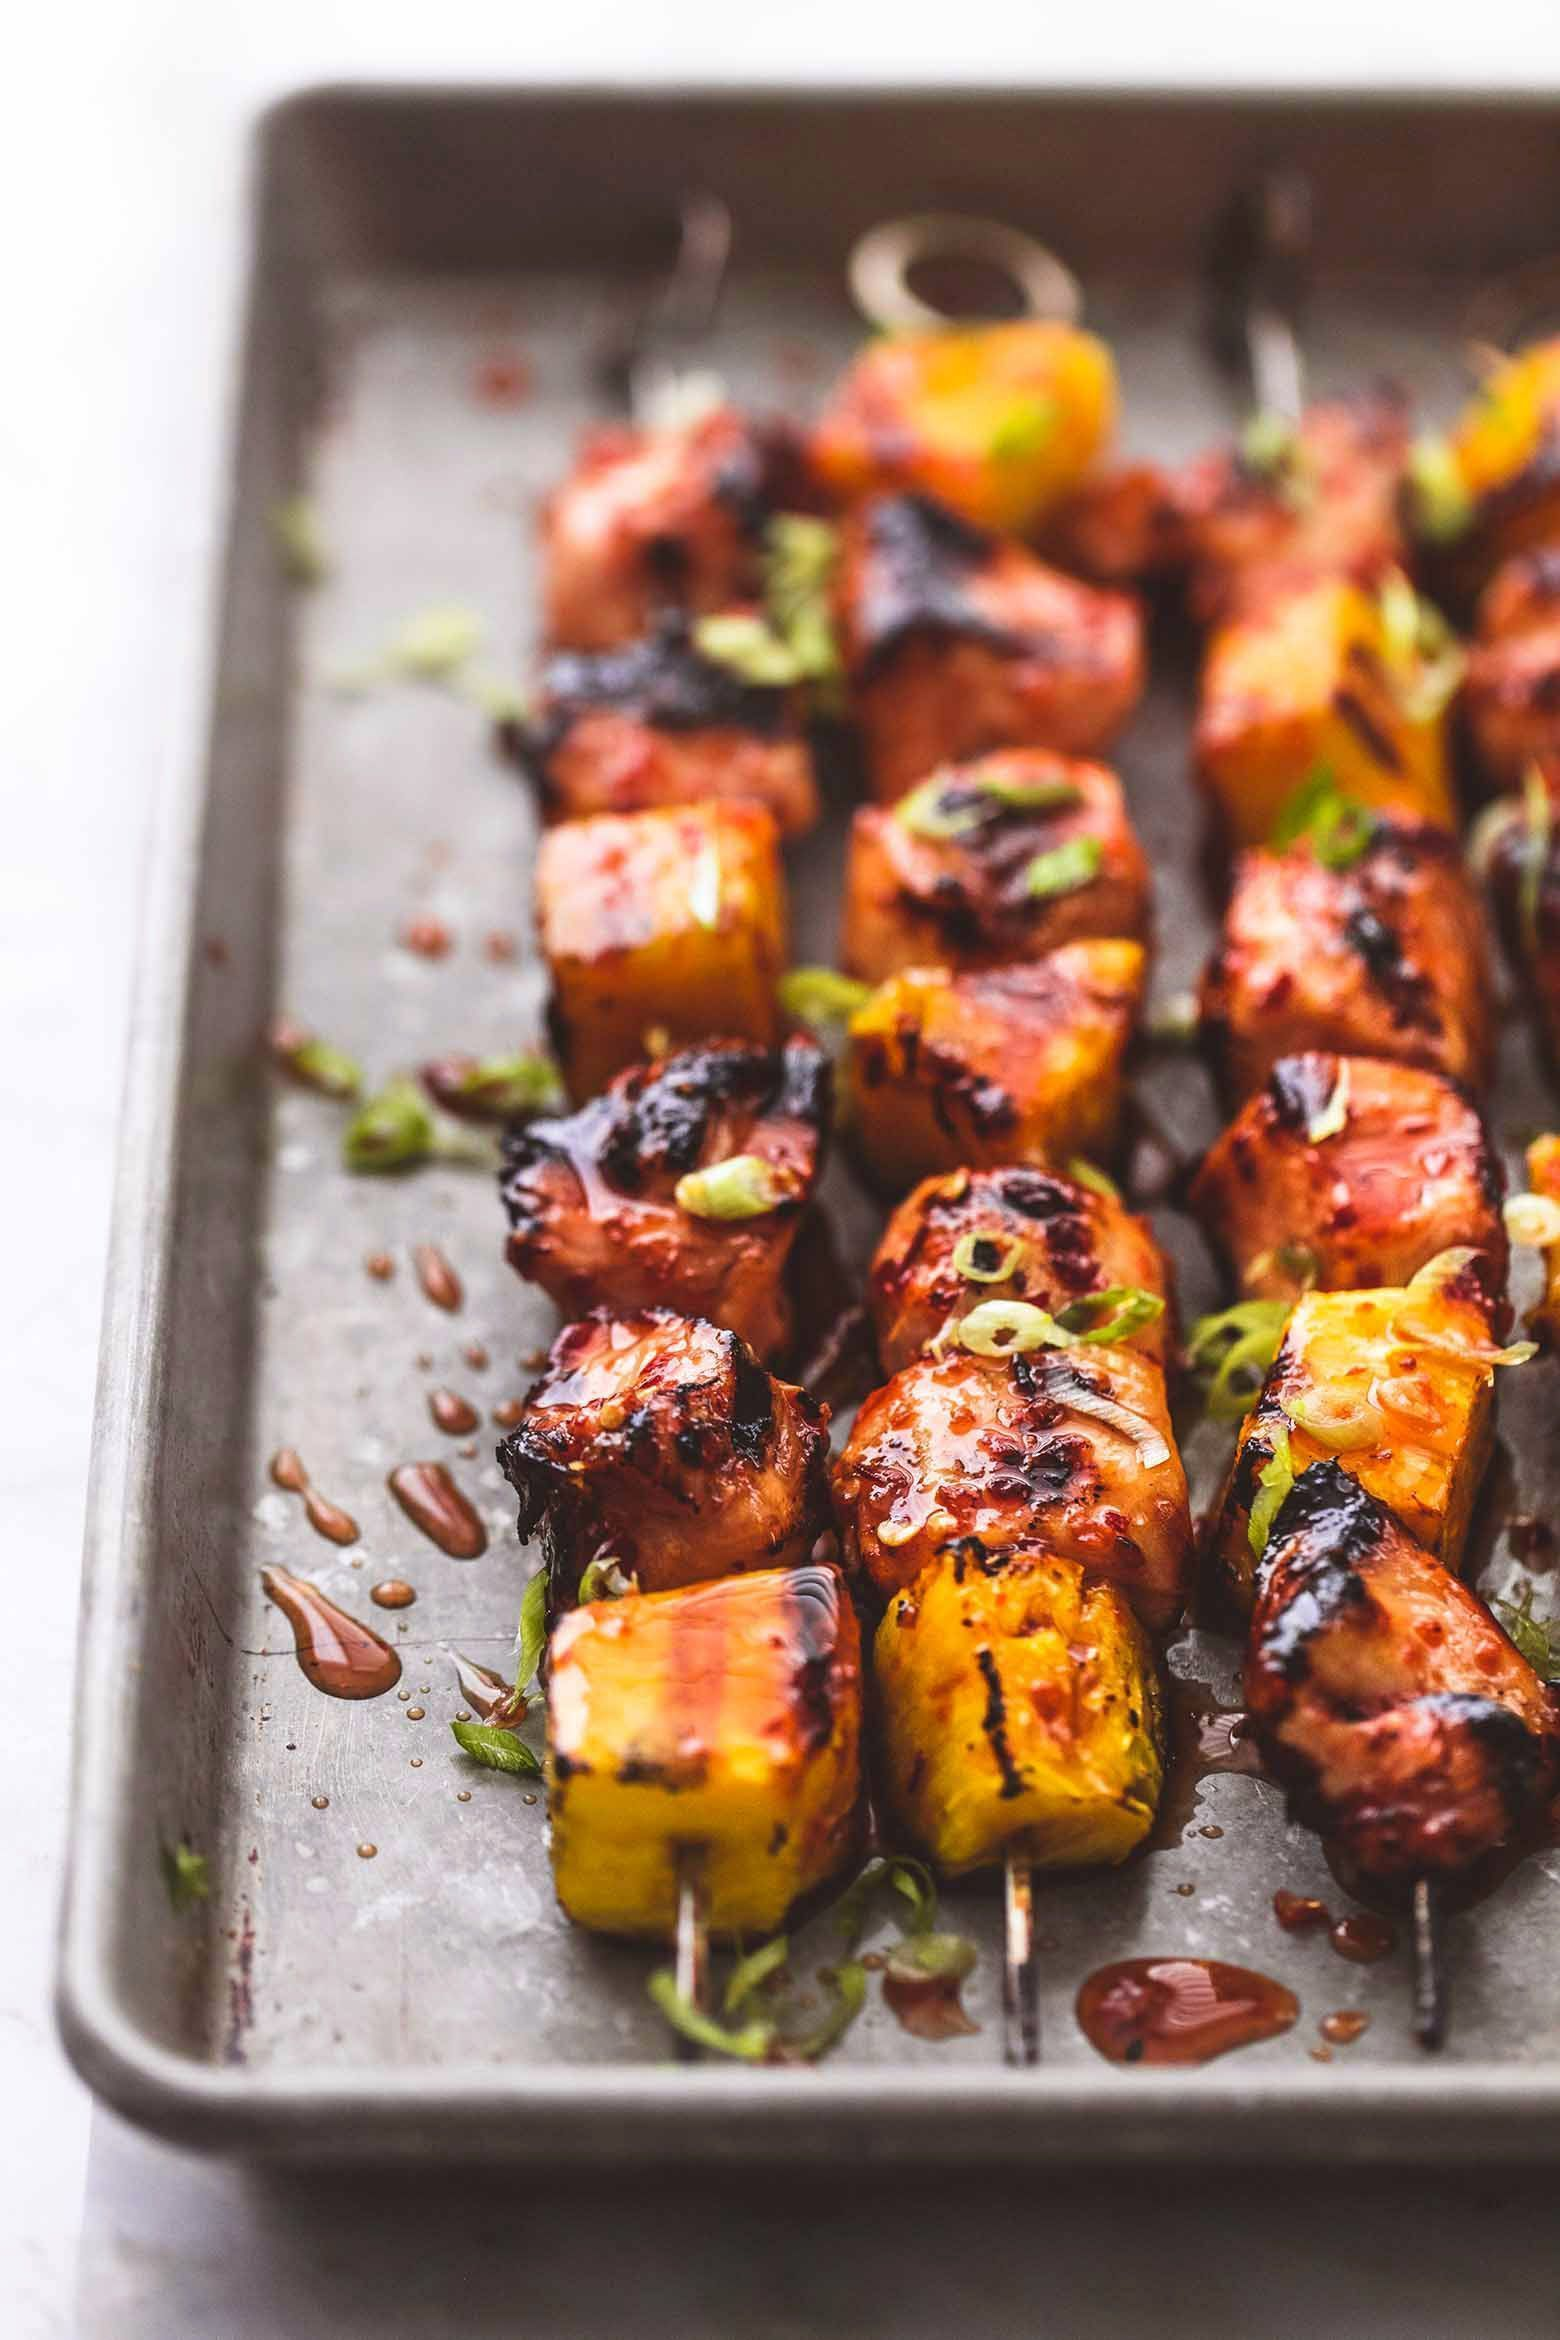 Grilled Sweet and Spicy Thai Chicken Kabobs easy grilling dinner recipe | lecremedelacrumb.com #chickenkabobmarinade Grilled Sweet and Spicy Thai Chicken Kabobs easy grilling dinner recipe | lecremedelacrumb.com #chickenkabobmarinade Grilled Sweet and Spicy Thai Chicken Kabobs easy grilling dinner recipe | lecremedelacrumb.com #chickenkabobmarinade Grilled Sweet and Spicy Thai Chicken Kabobs easy grilling dinner recipe | lecremedelacrumb.com #chickenkabobmarinade Grilled Sweet and Spicy Thai Chi #chickenkabobmarinade